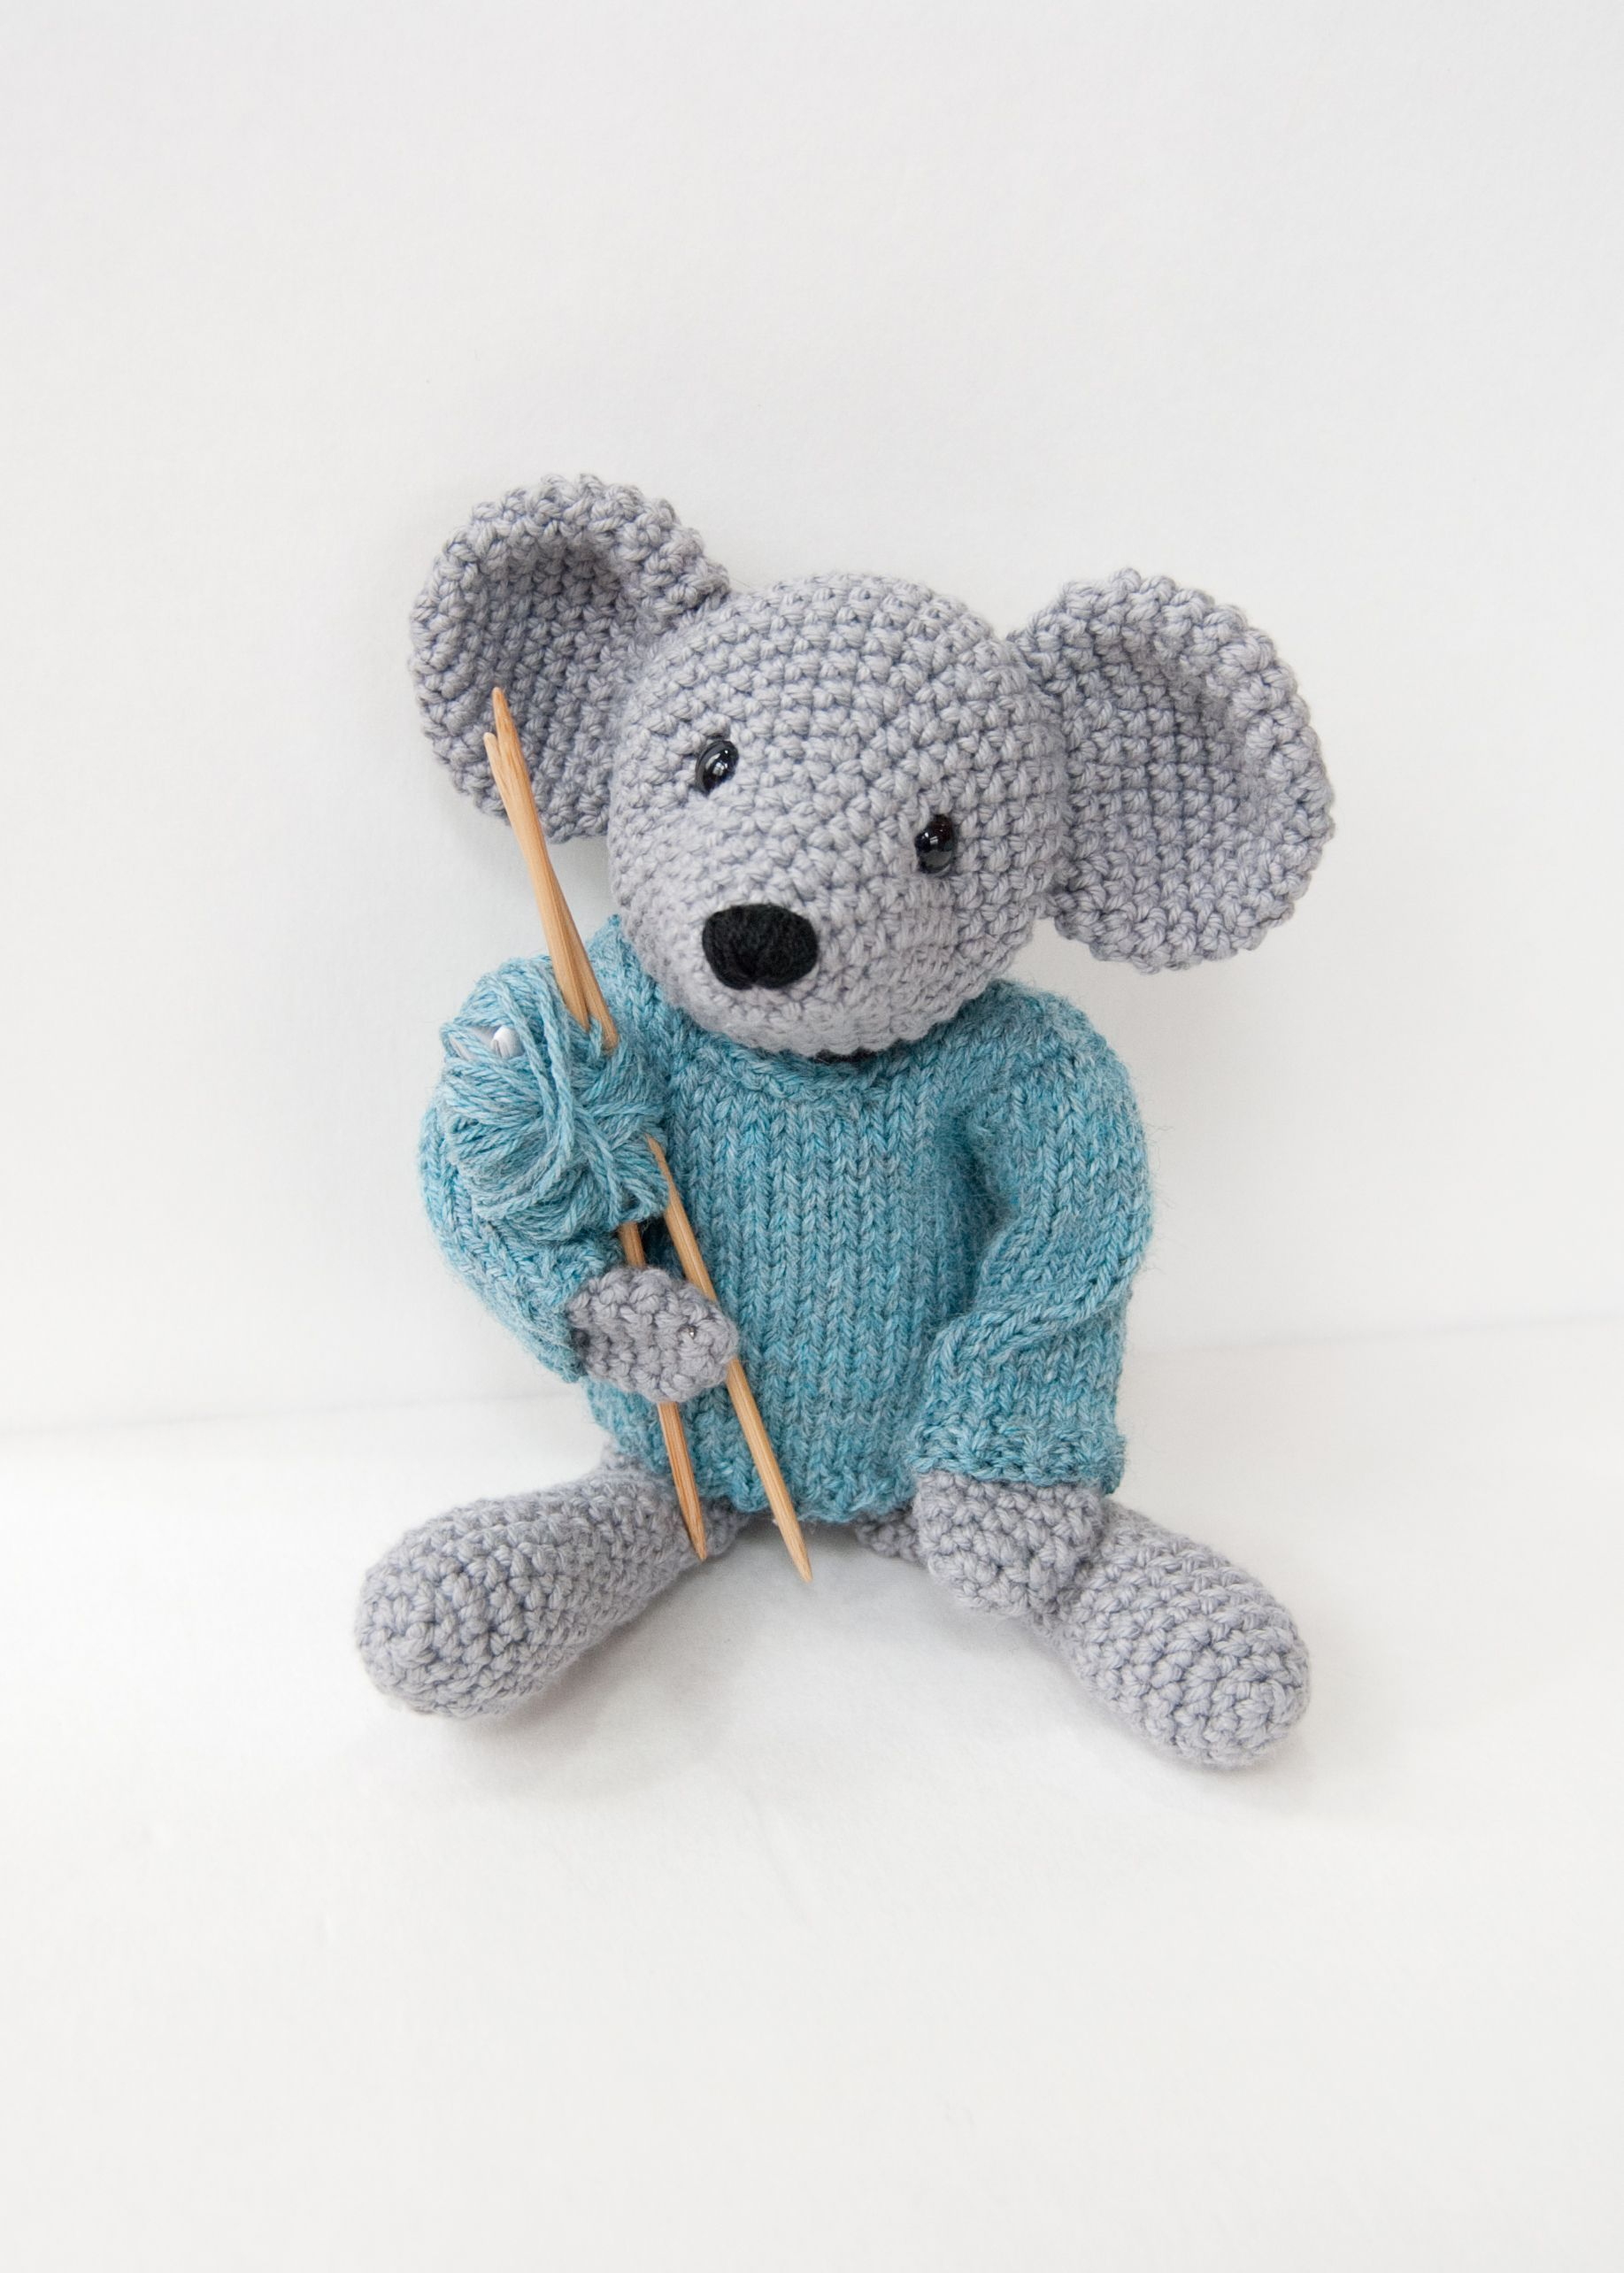 Mouse Pattern - Knitting Patterns and Crochet Patterns from KnitPicks.com